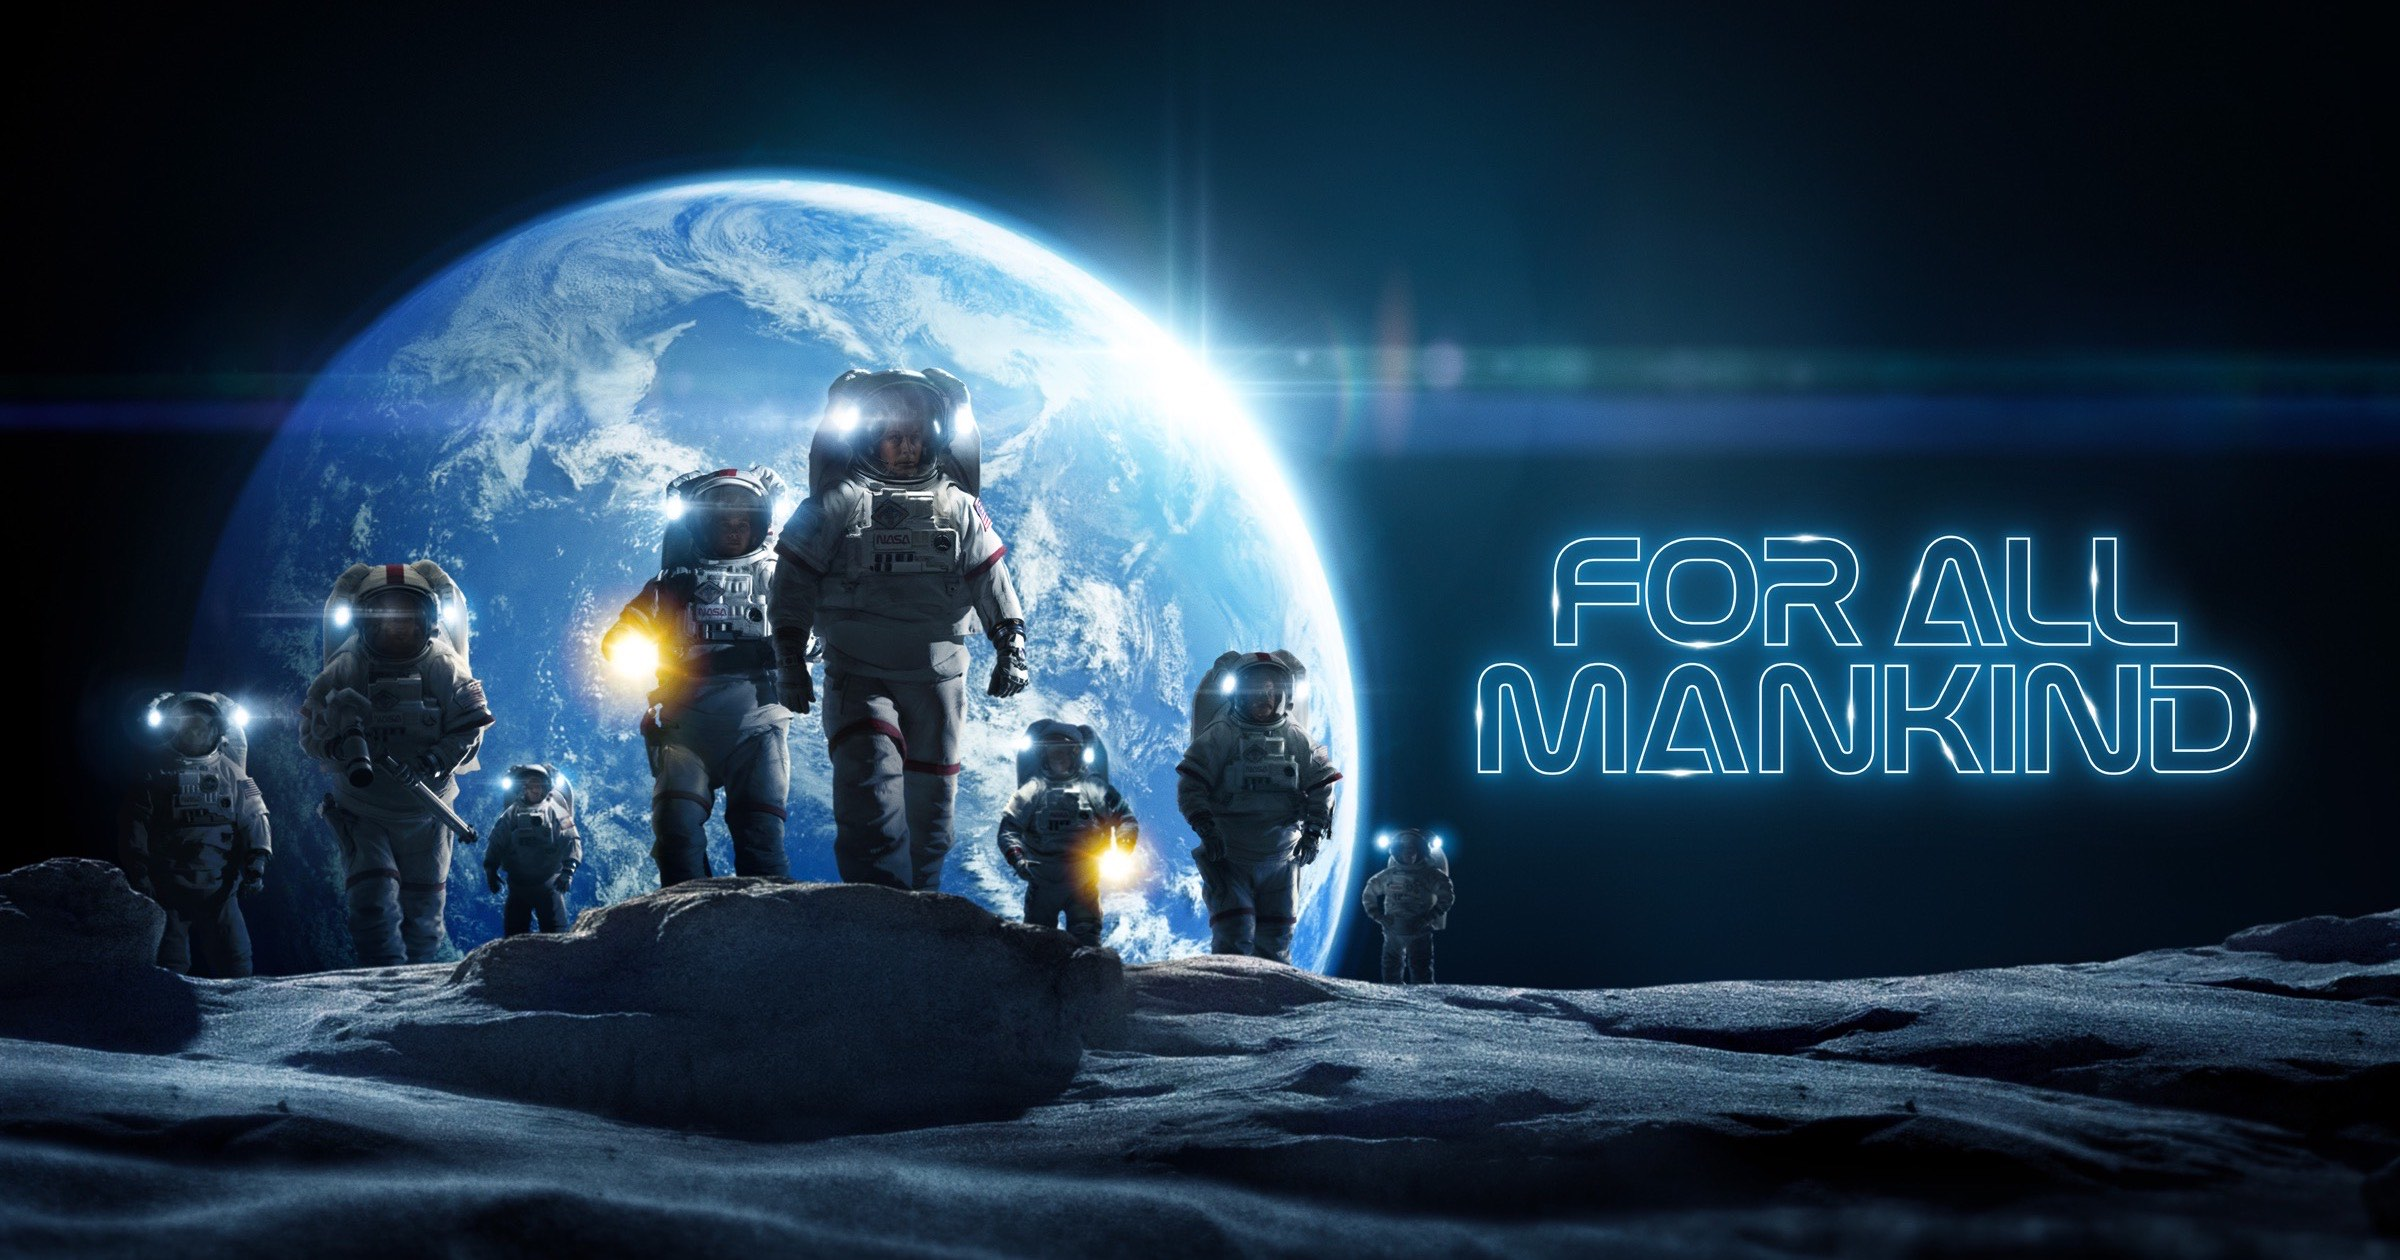 For all mankind season three poster